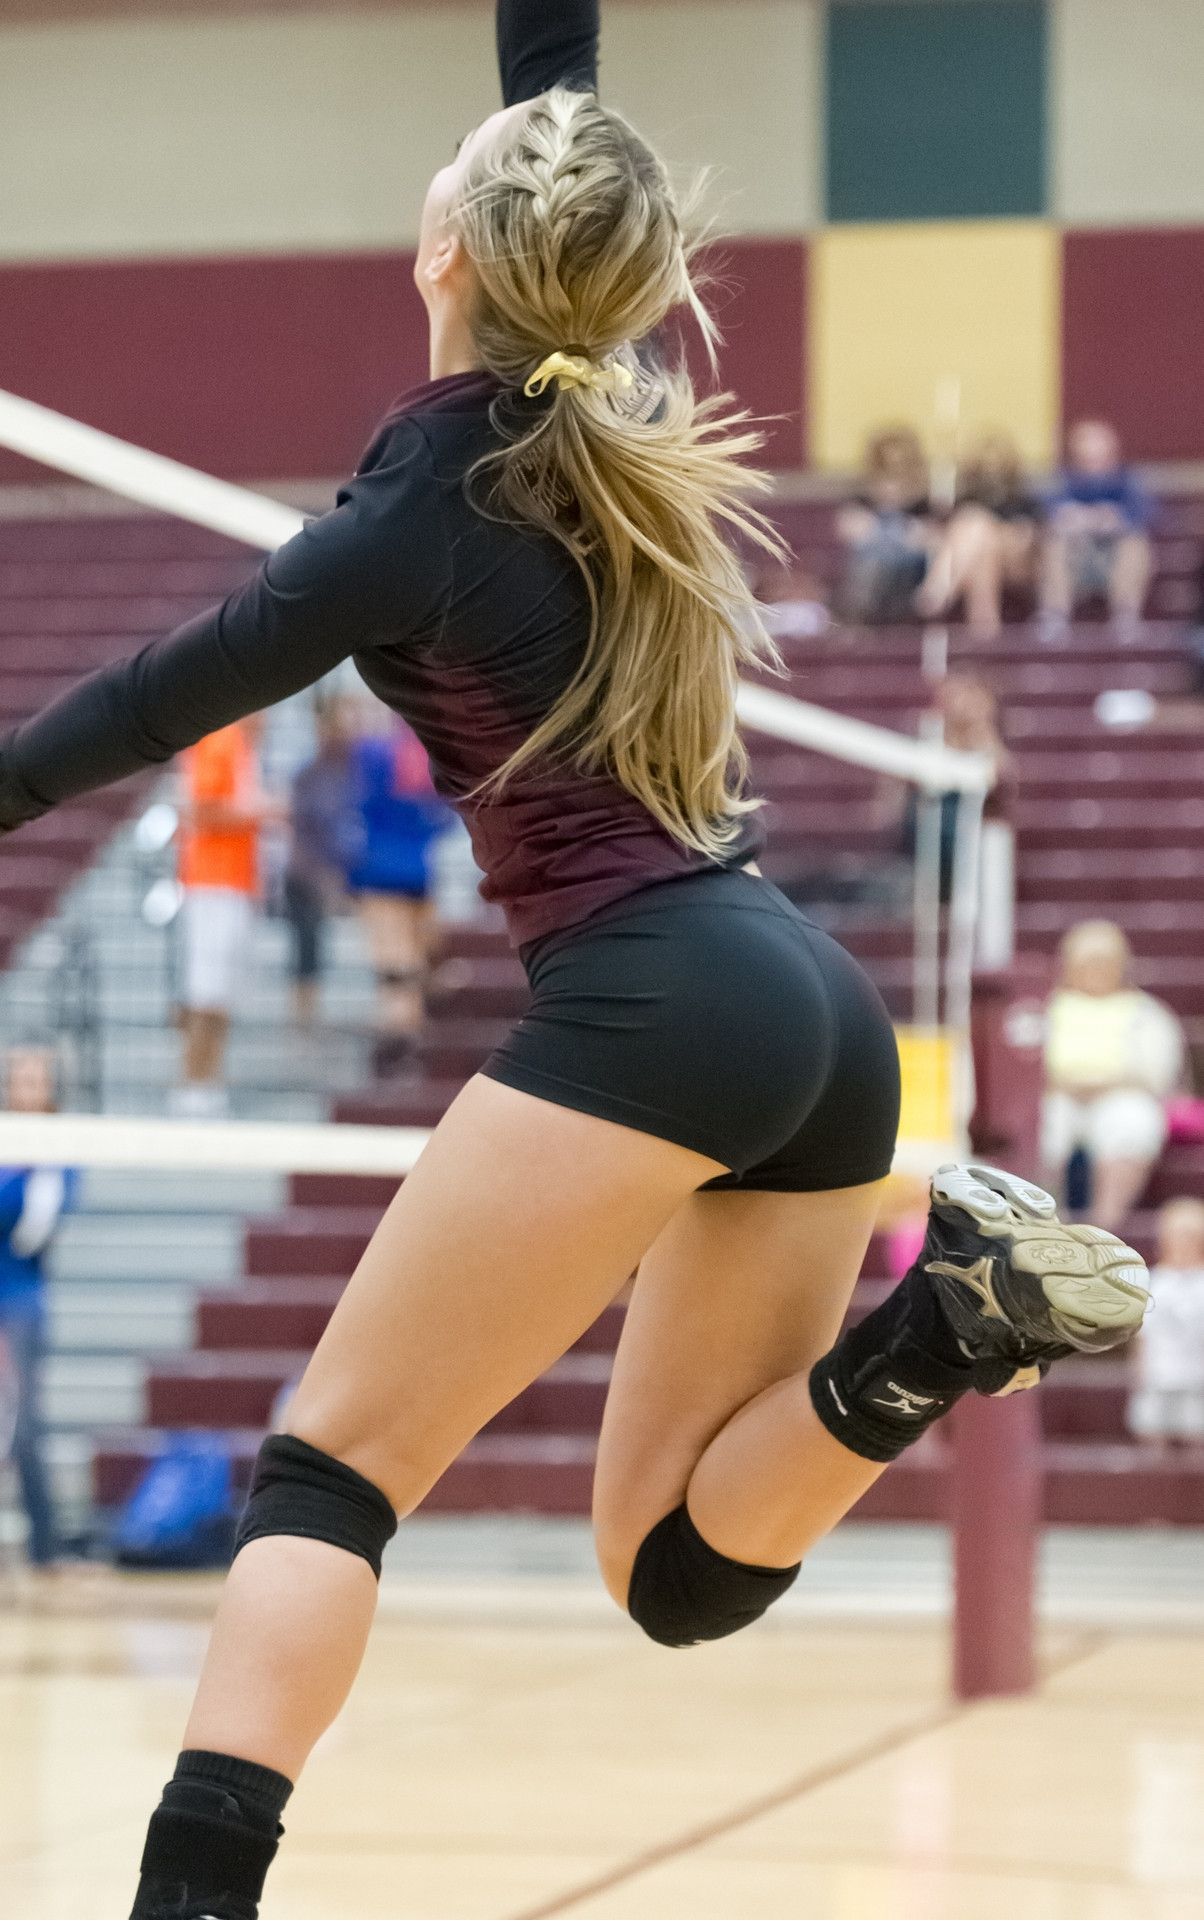 Sexy blonde volleyball player